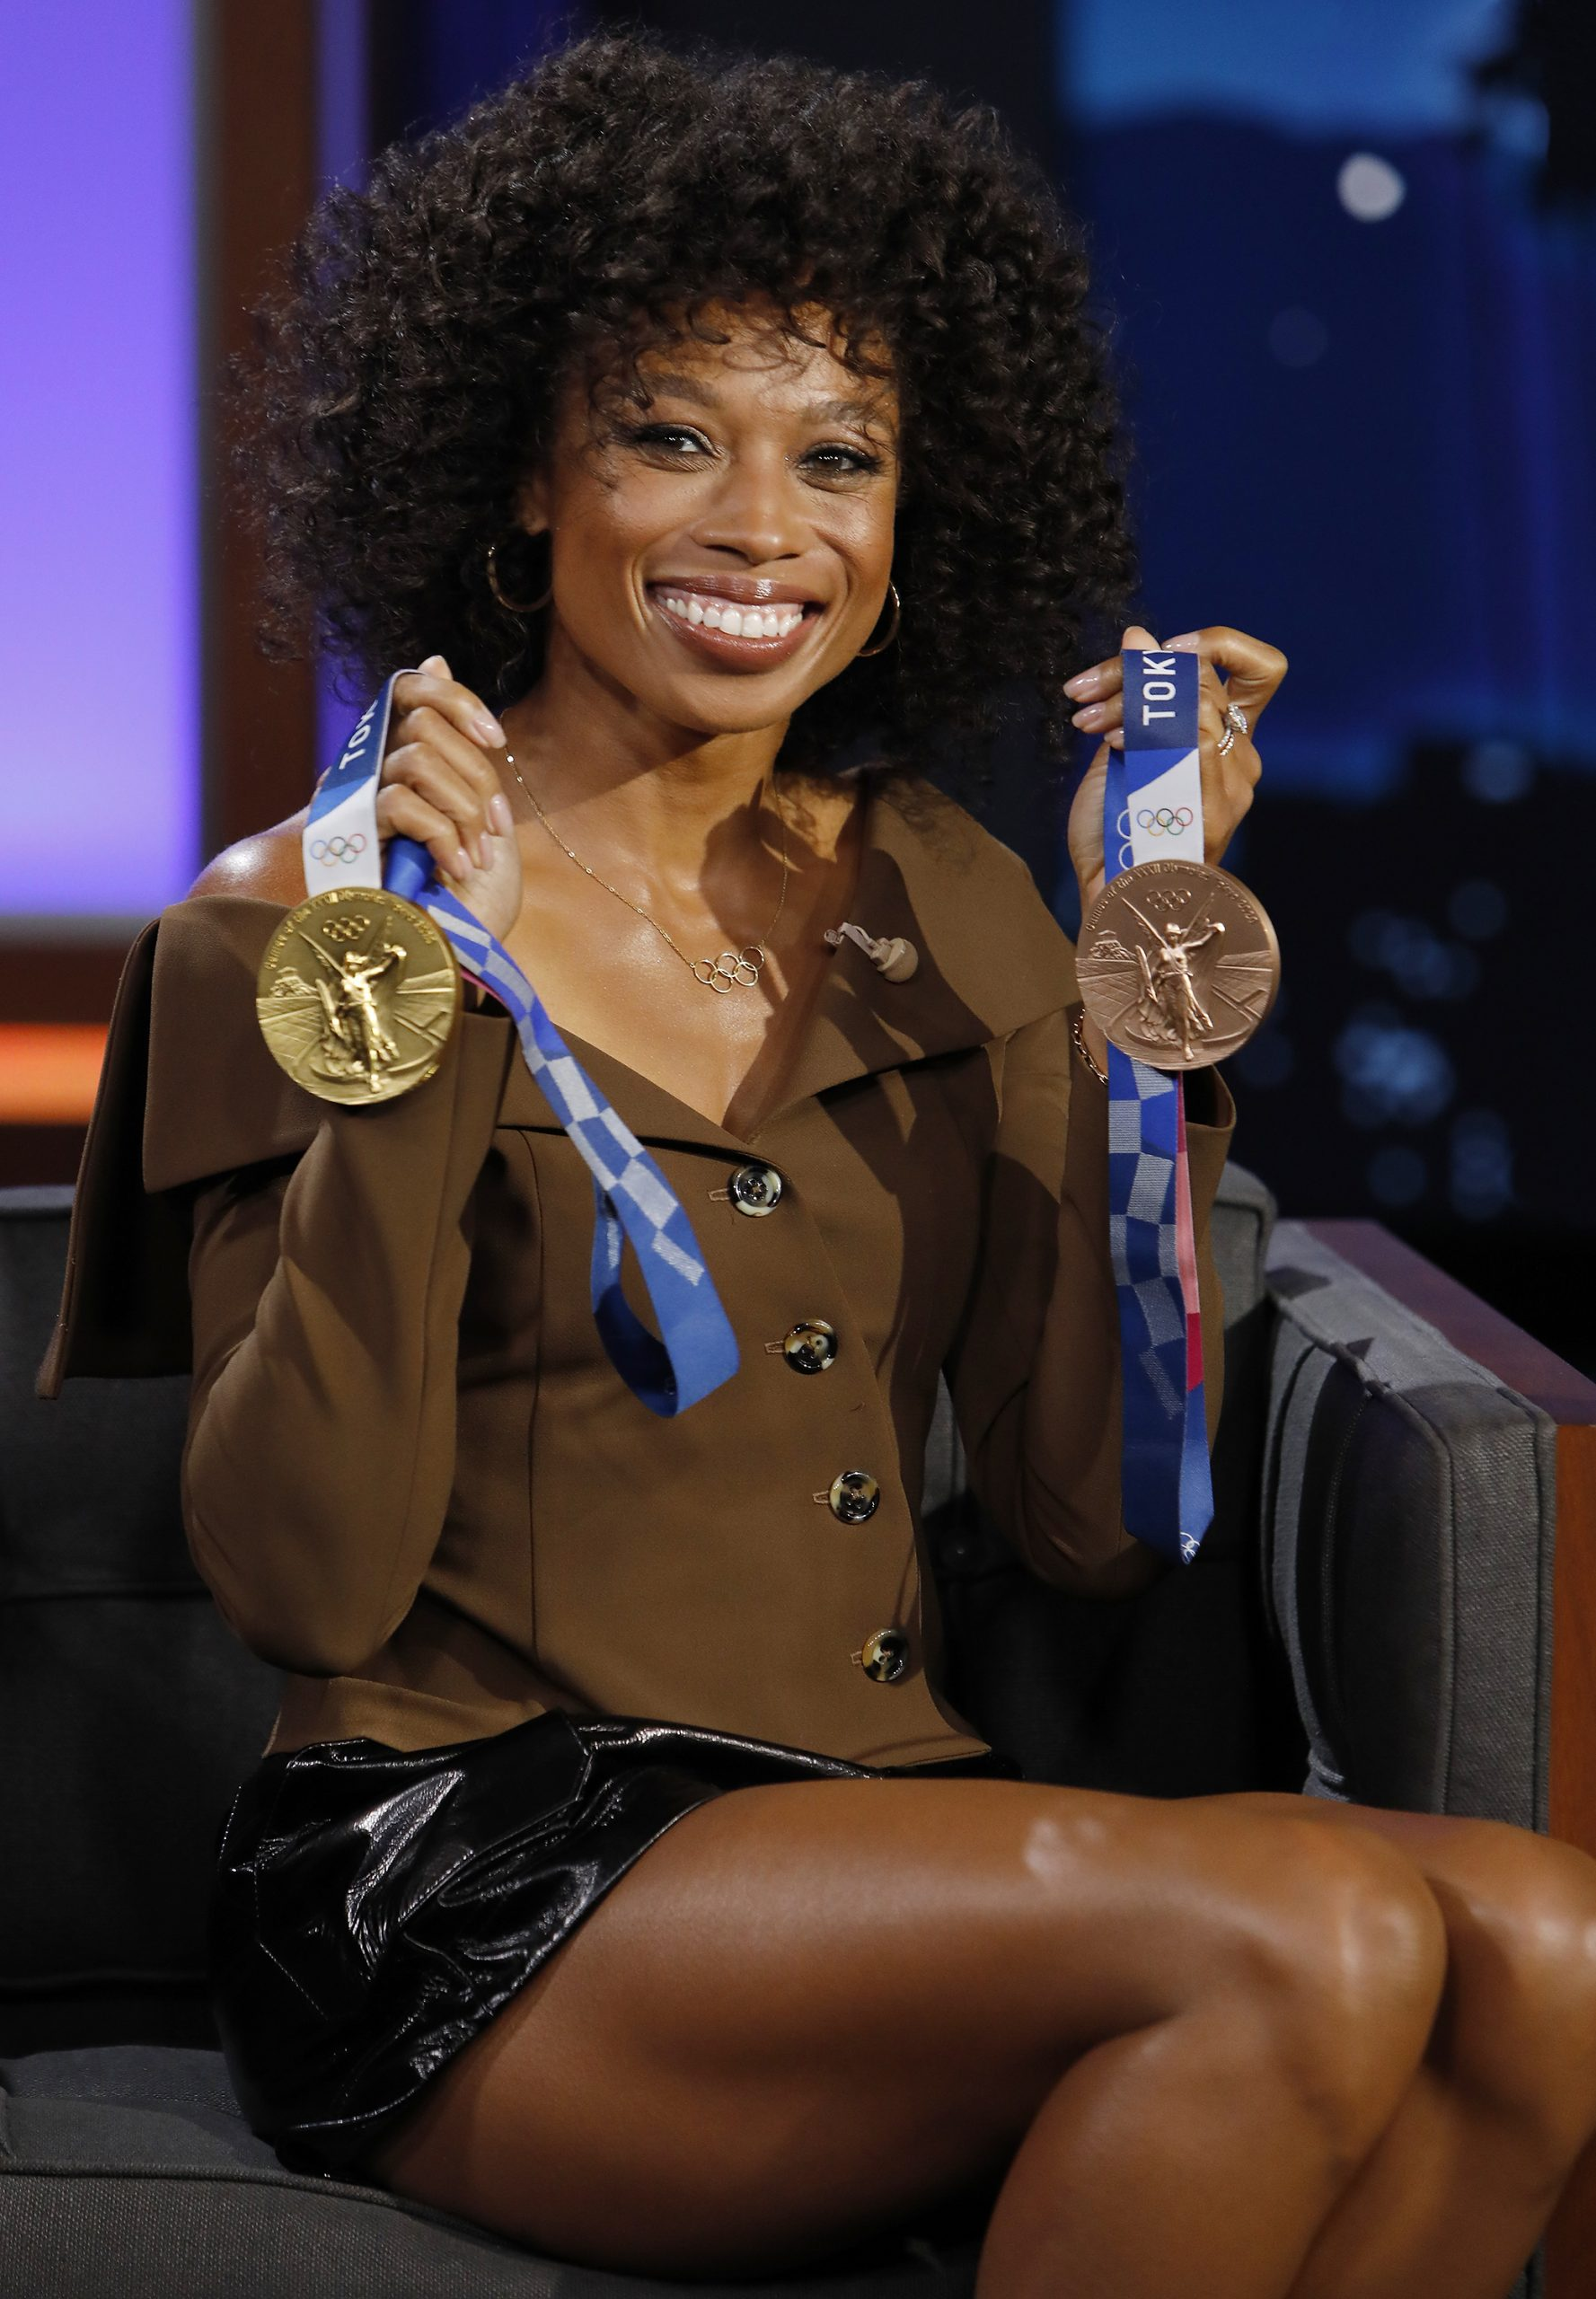 In Case You Missed It: Olympic Gold Medalist Allyson Felix On 'Jimmy Kimmel Live'